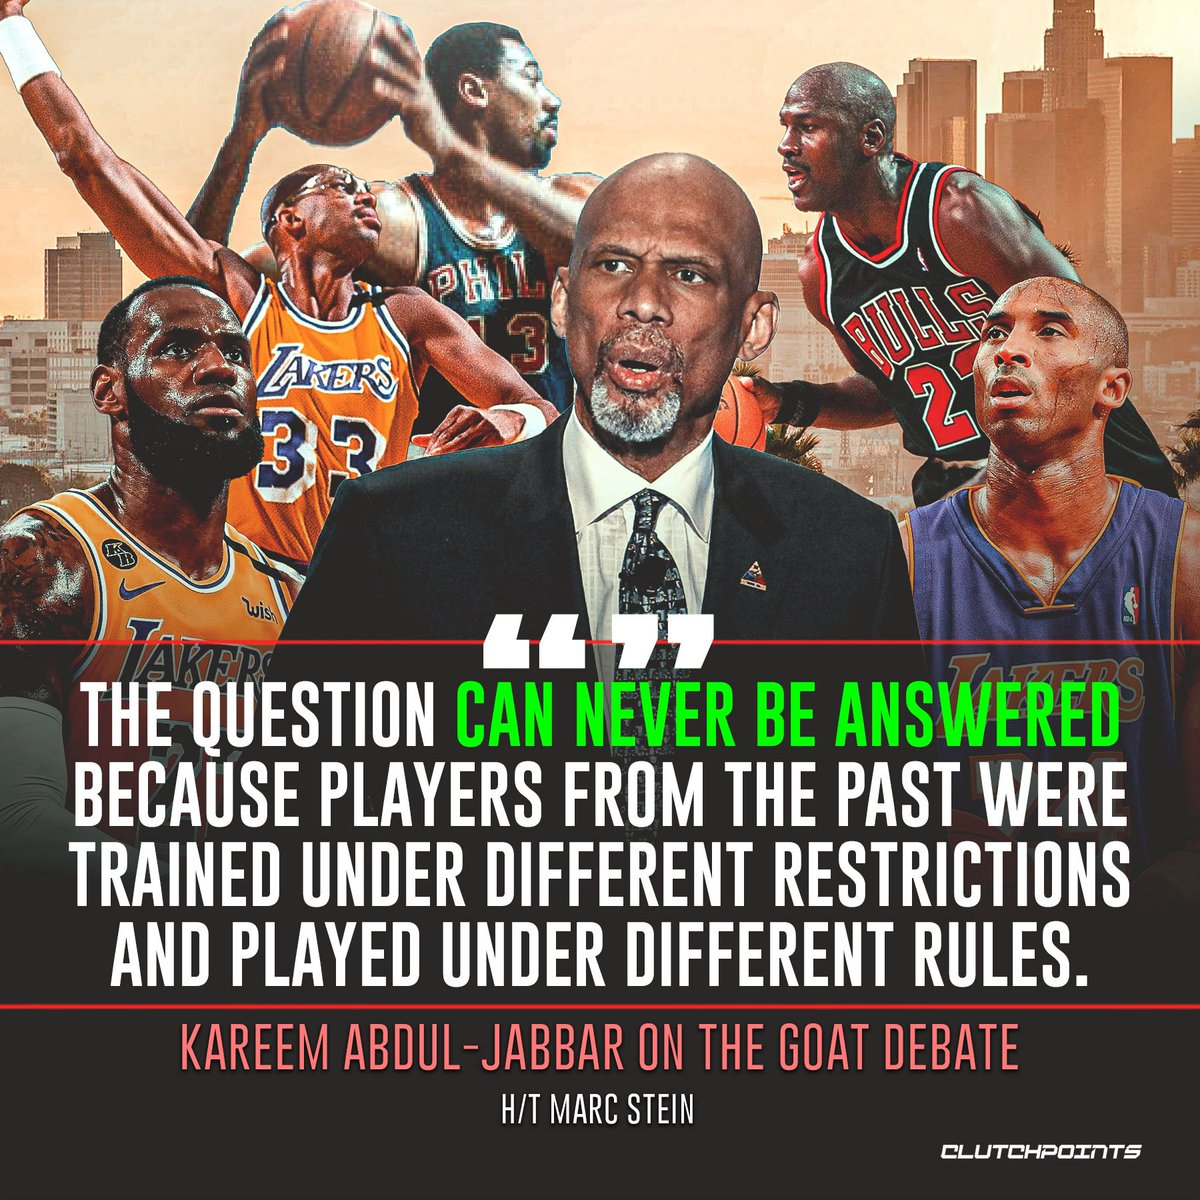 'The question can never be answered because players from the past were trained under different restrictions and played under different rules.' - @kaj33 to @TheSteinLine on the NBA GOAT debate. Does Kareem have a point? 🤔